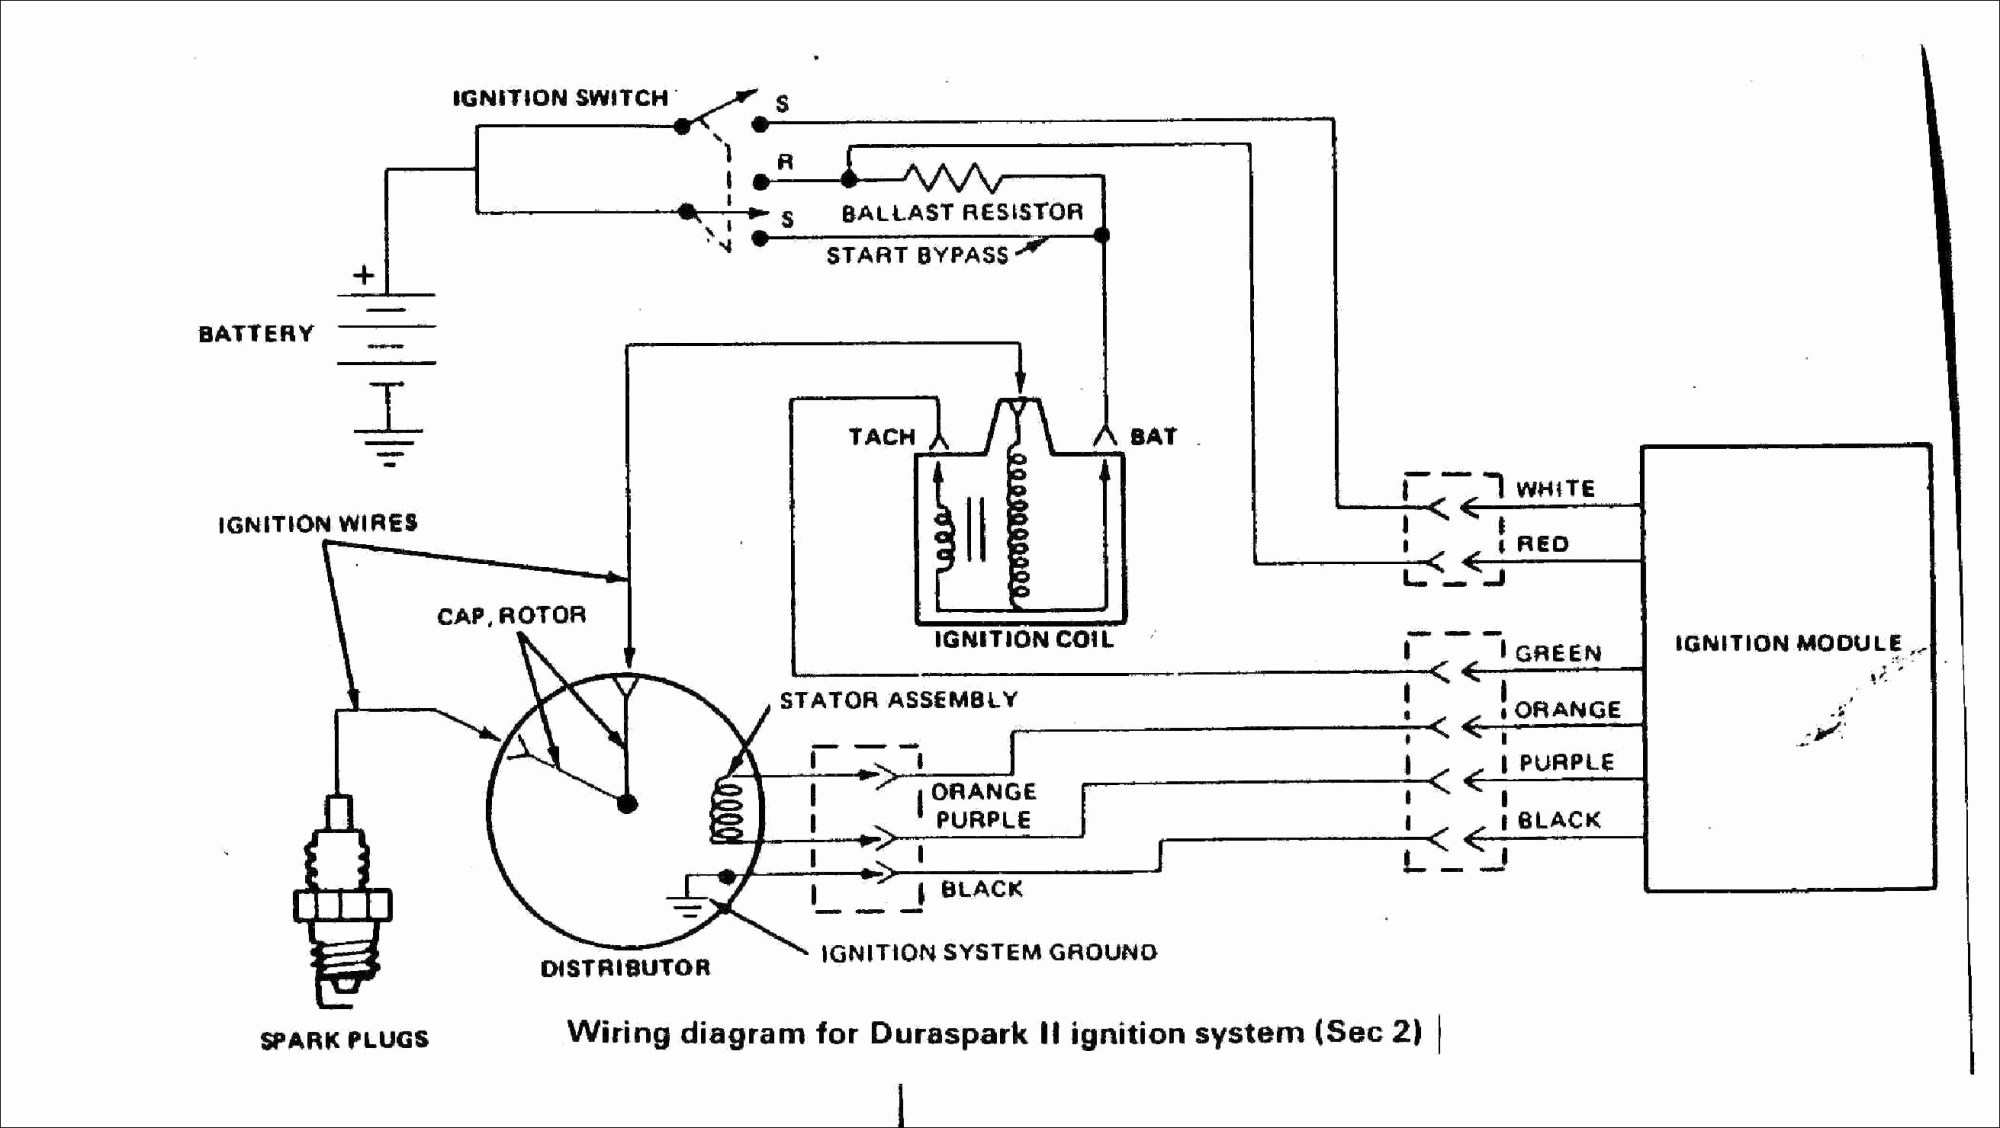 hight resolution of riding lawn mower ignition switch wiring diagram 3 position ignition switch wiring diagram new lawn